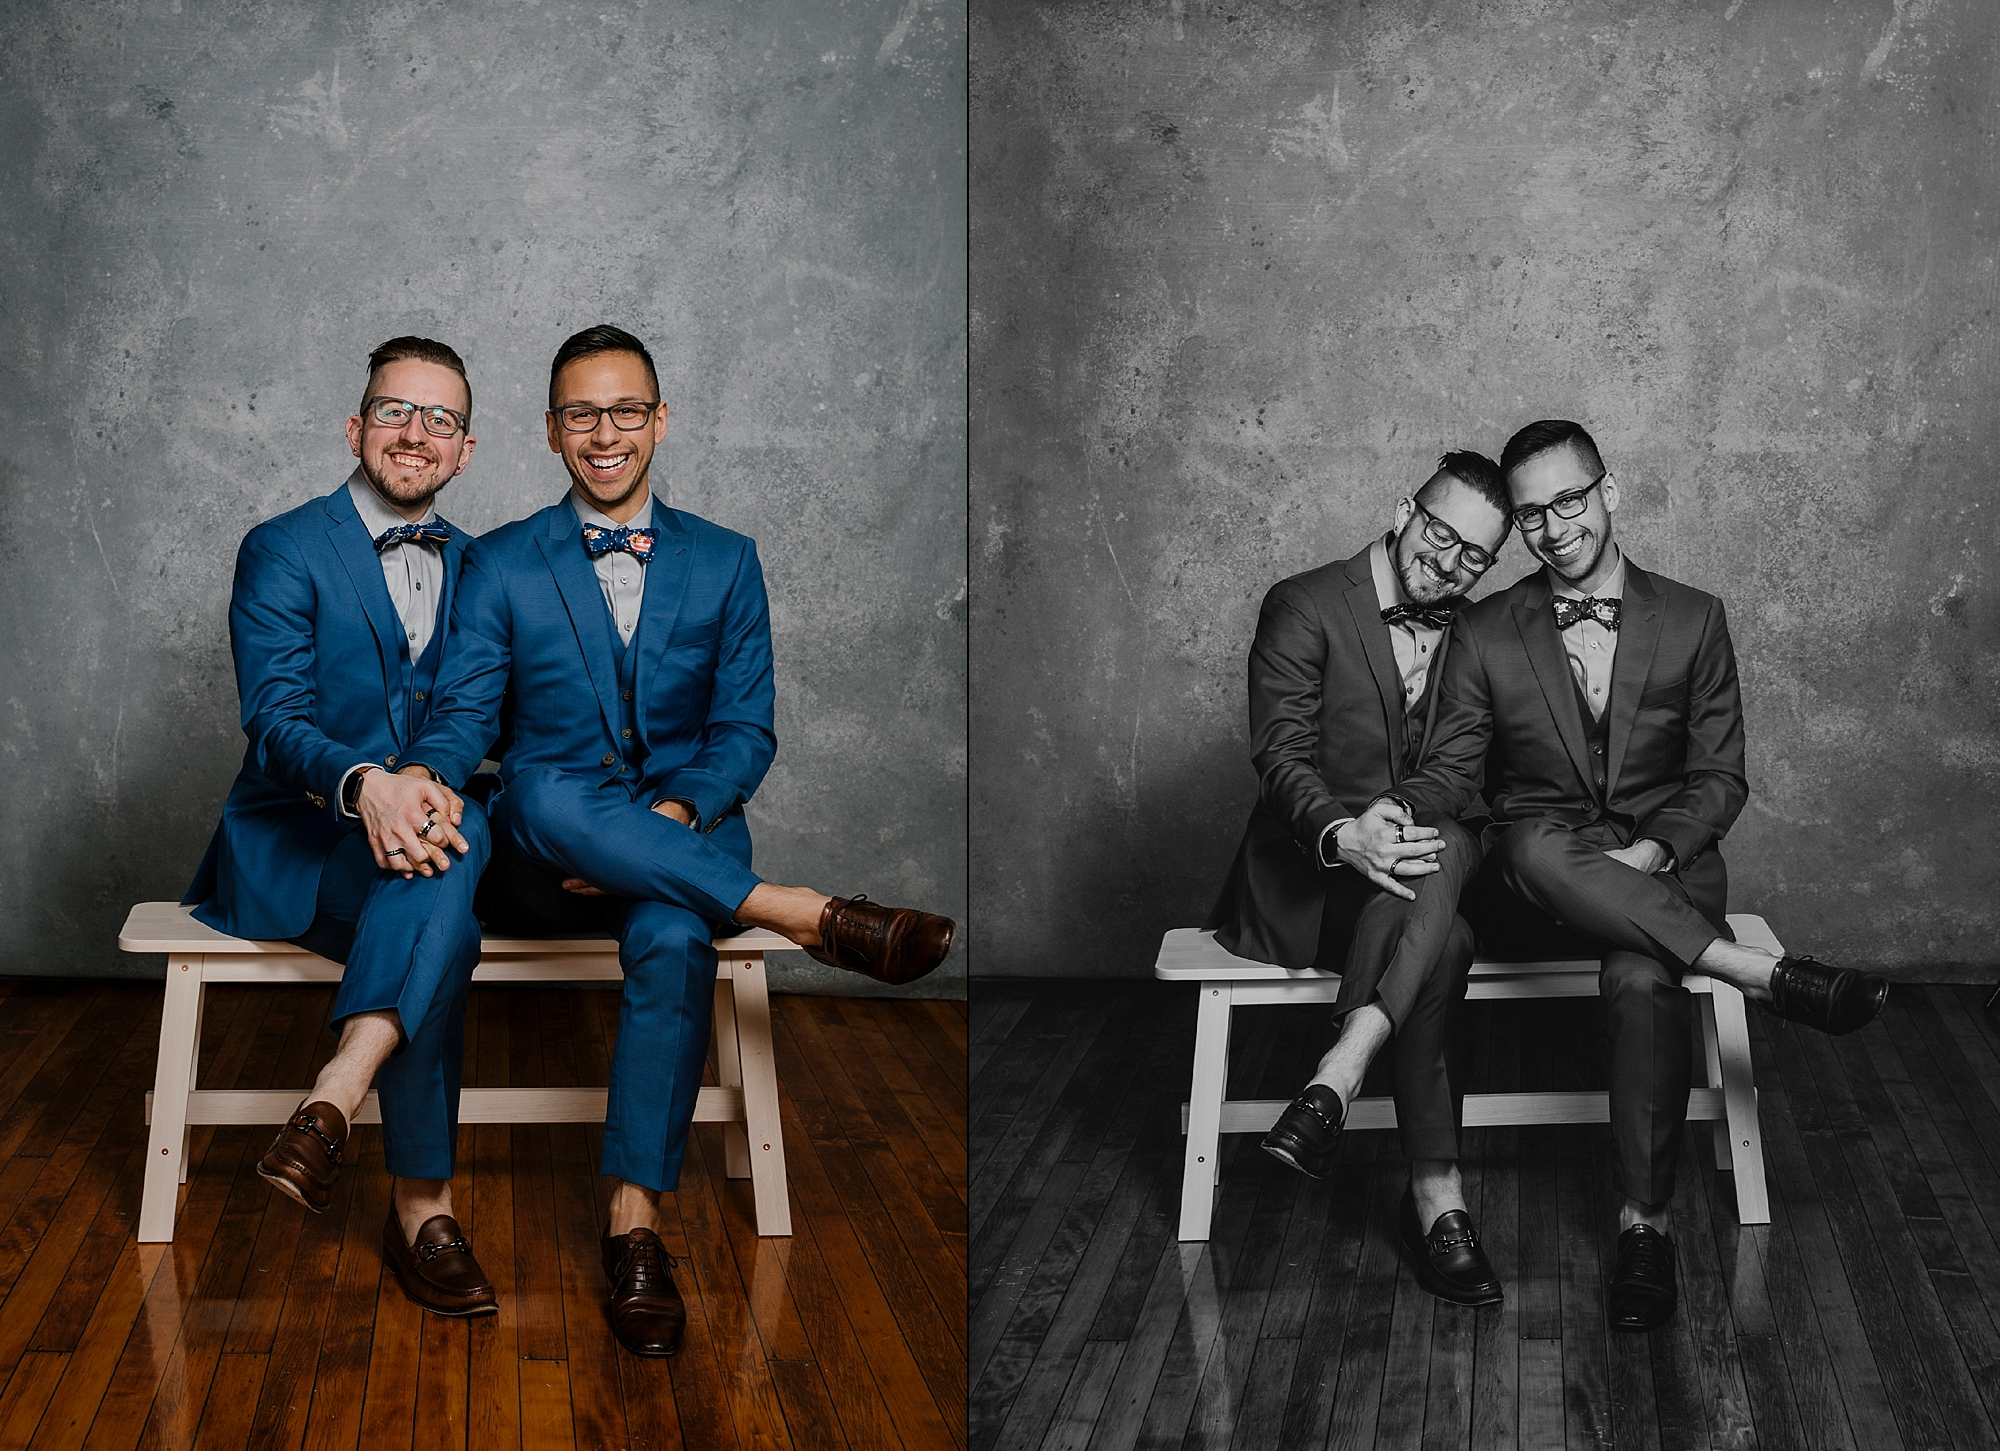 Joe_Mac_Creative_Philadelphia_Philly_LGBT_Gay_Engagement_Wedding_Photography__0090.jpg